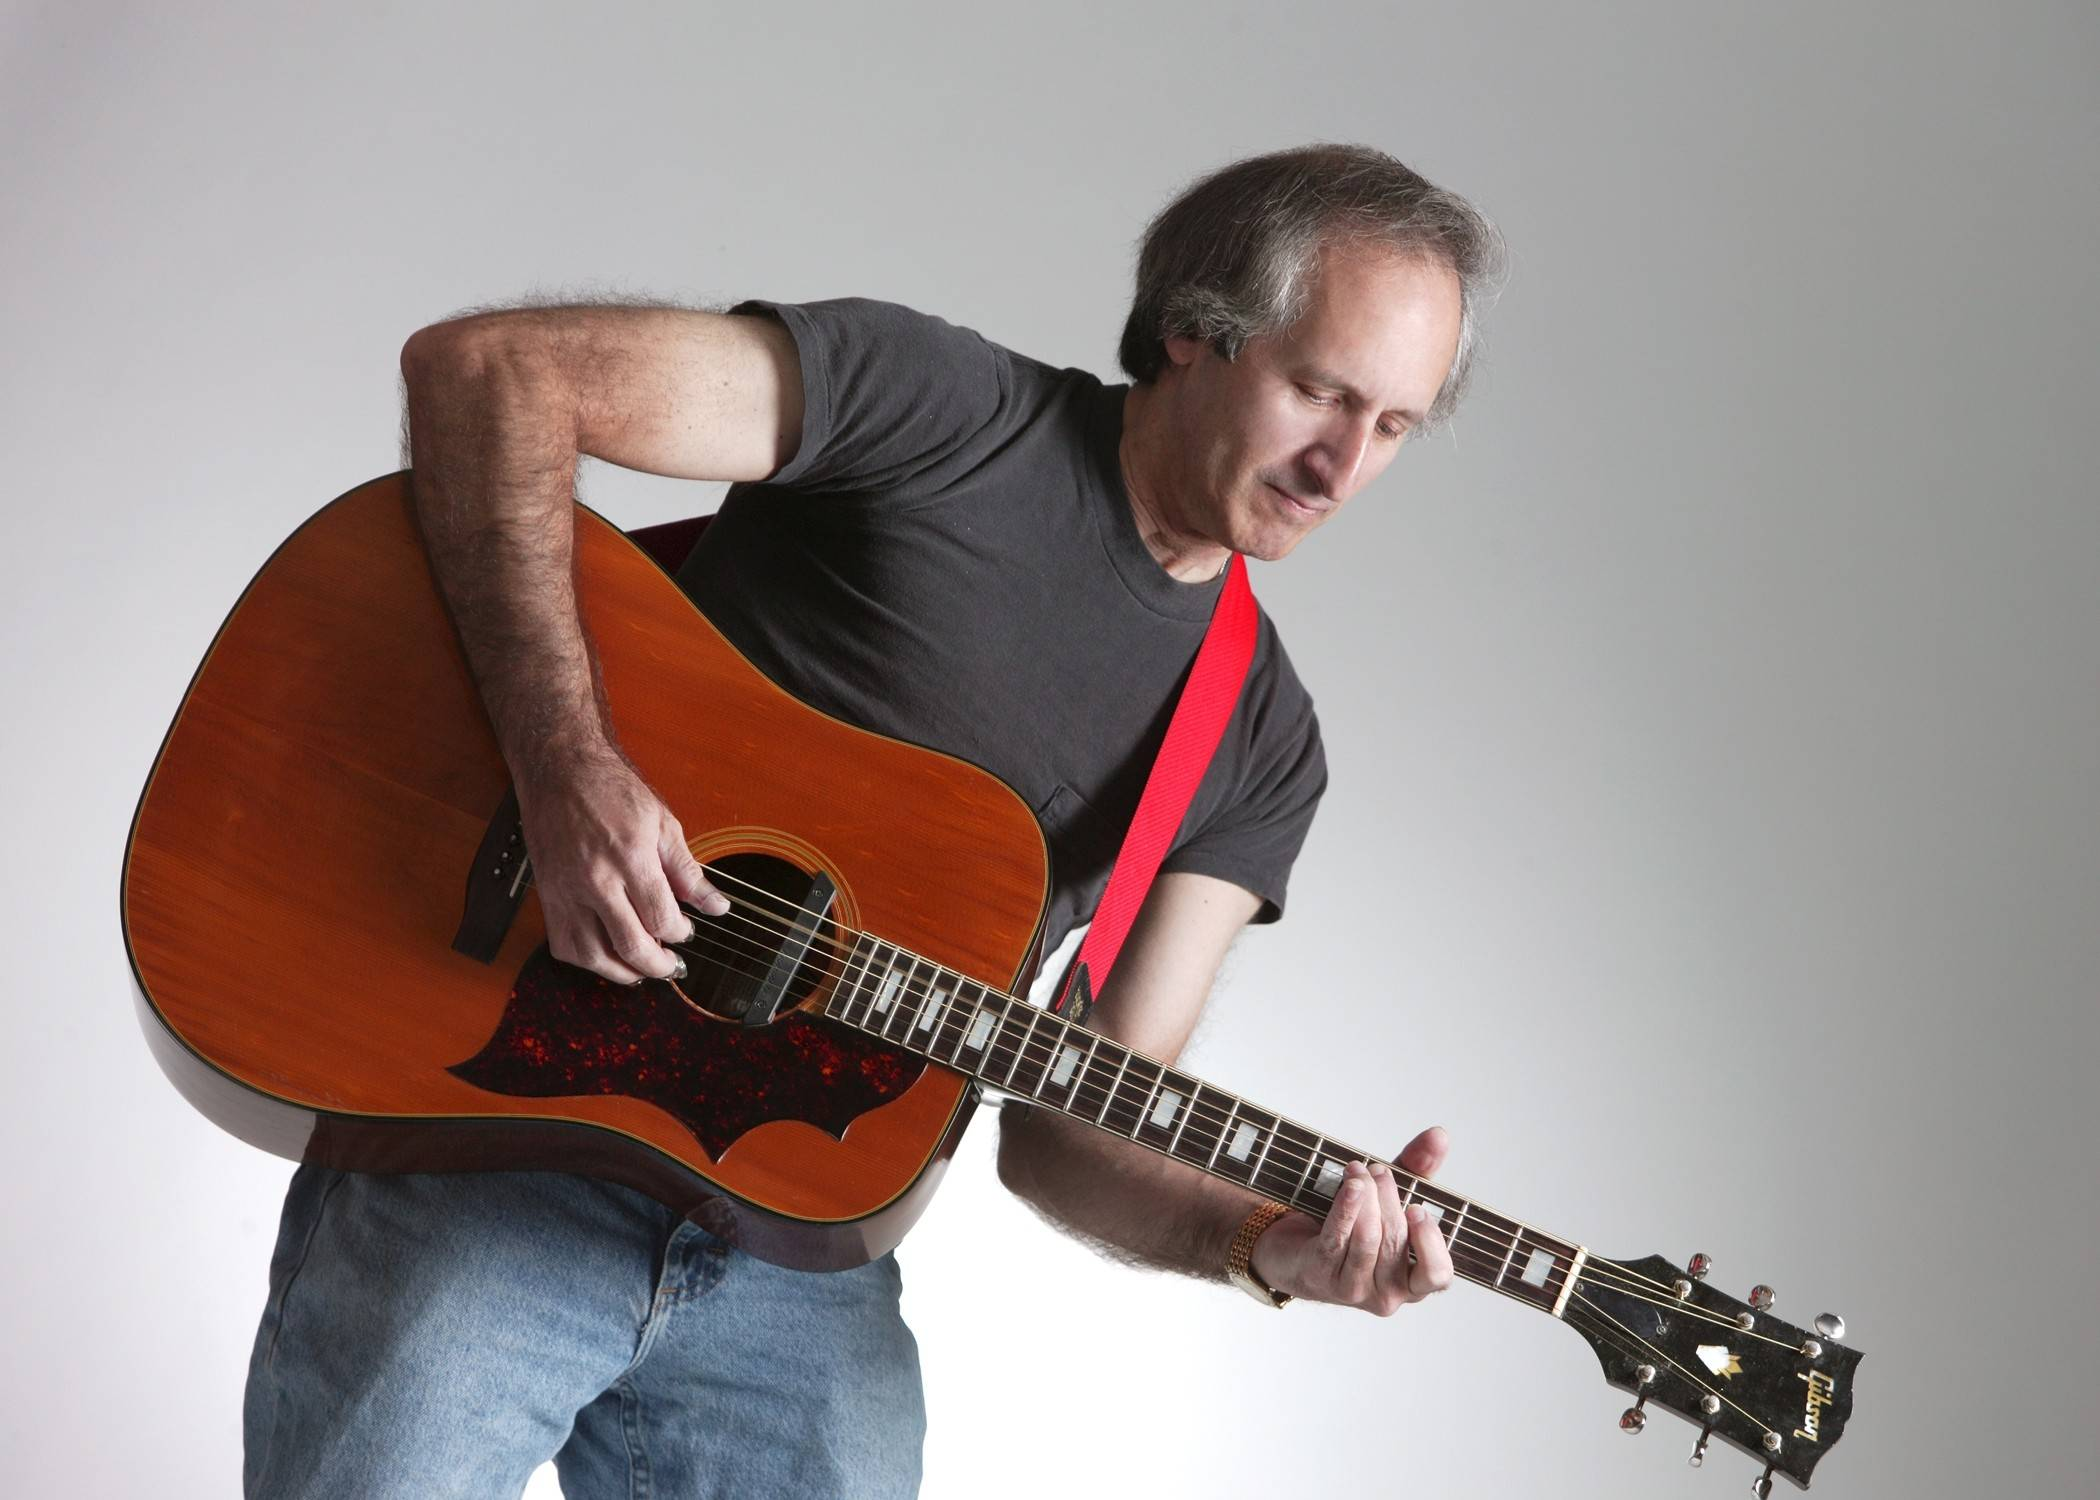 """Jazzman"" Jeff Justman will be the master of ceremonies at the Schornick Theatre and perform artistic acoustic guitar Beatle Jazz, '60s music and original songs."